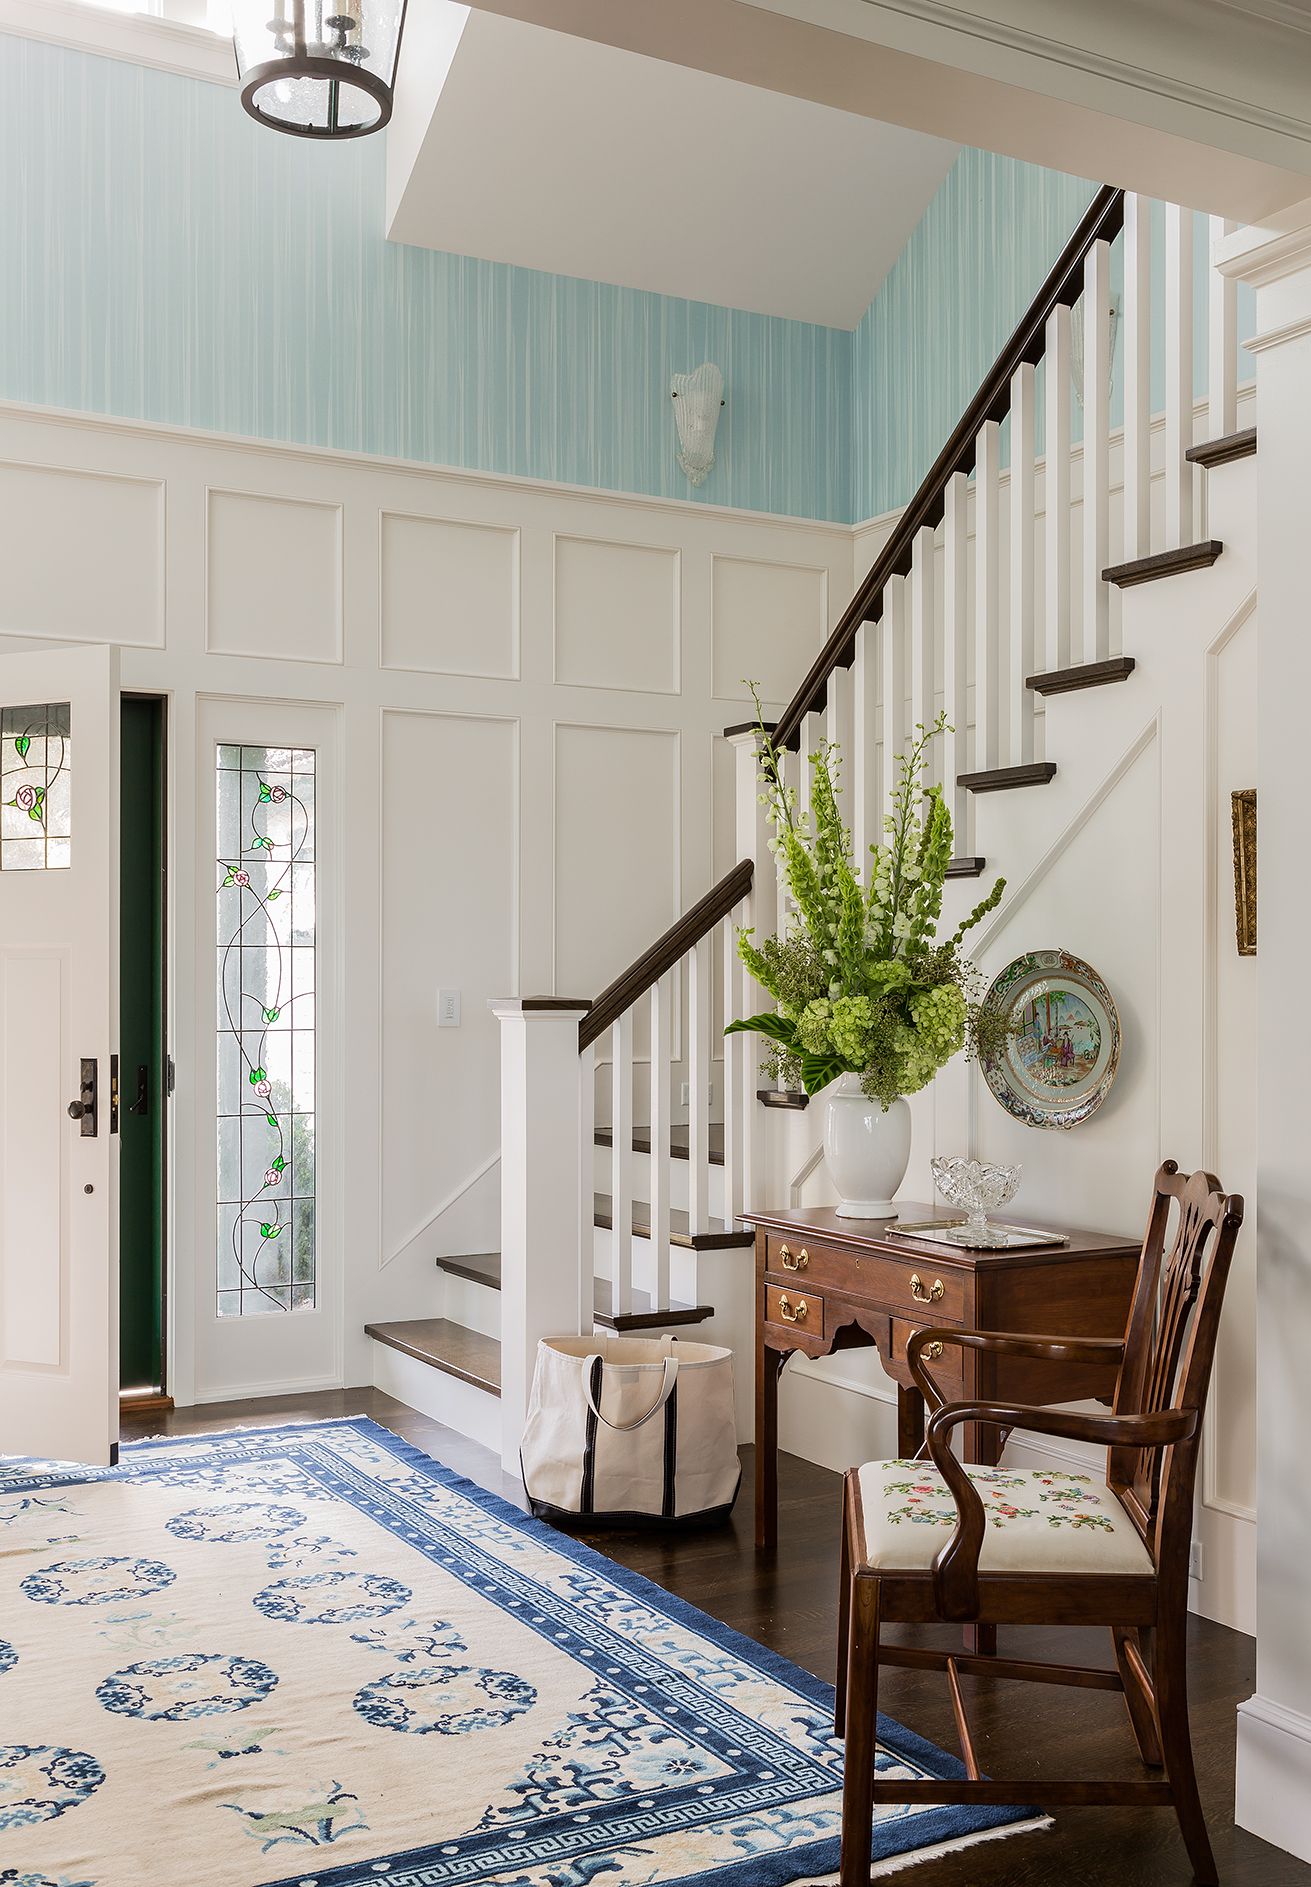 This cheery waterfront home blends contemporary styling and colors with antique furnishings to create a comfortably elegant interior design created by Boston Interior Designer, Elizabeth Swartz Interiors.